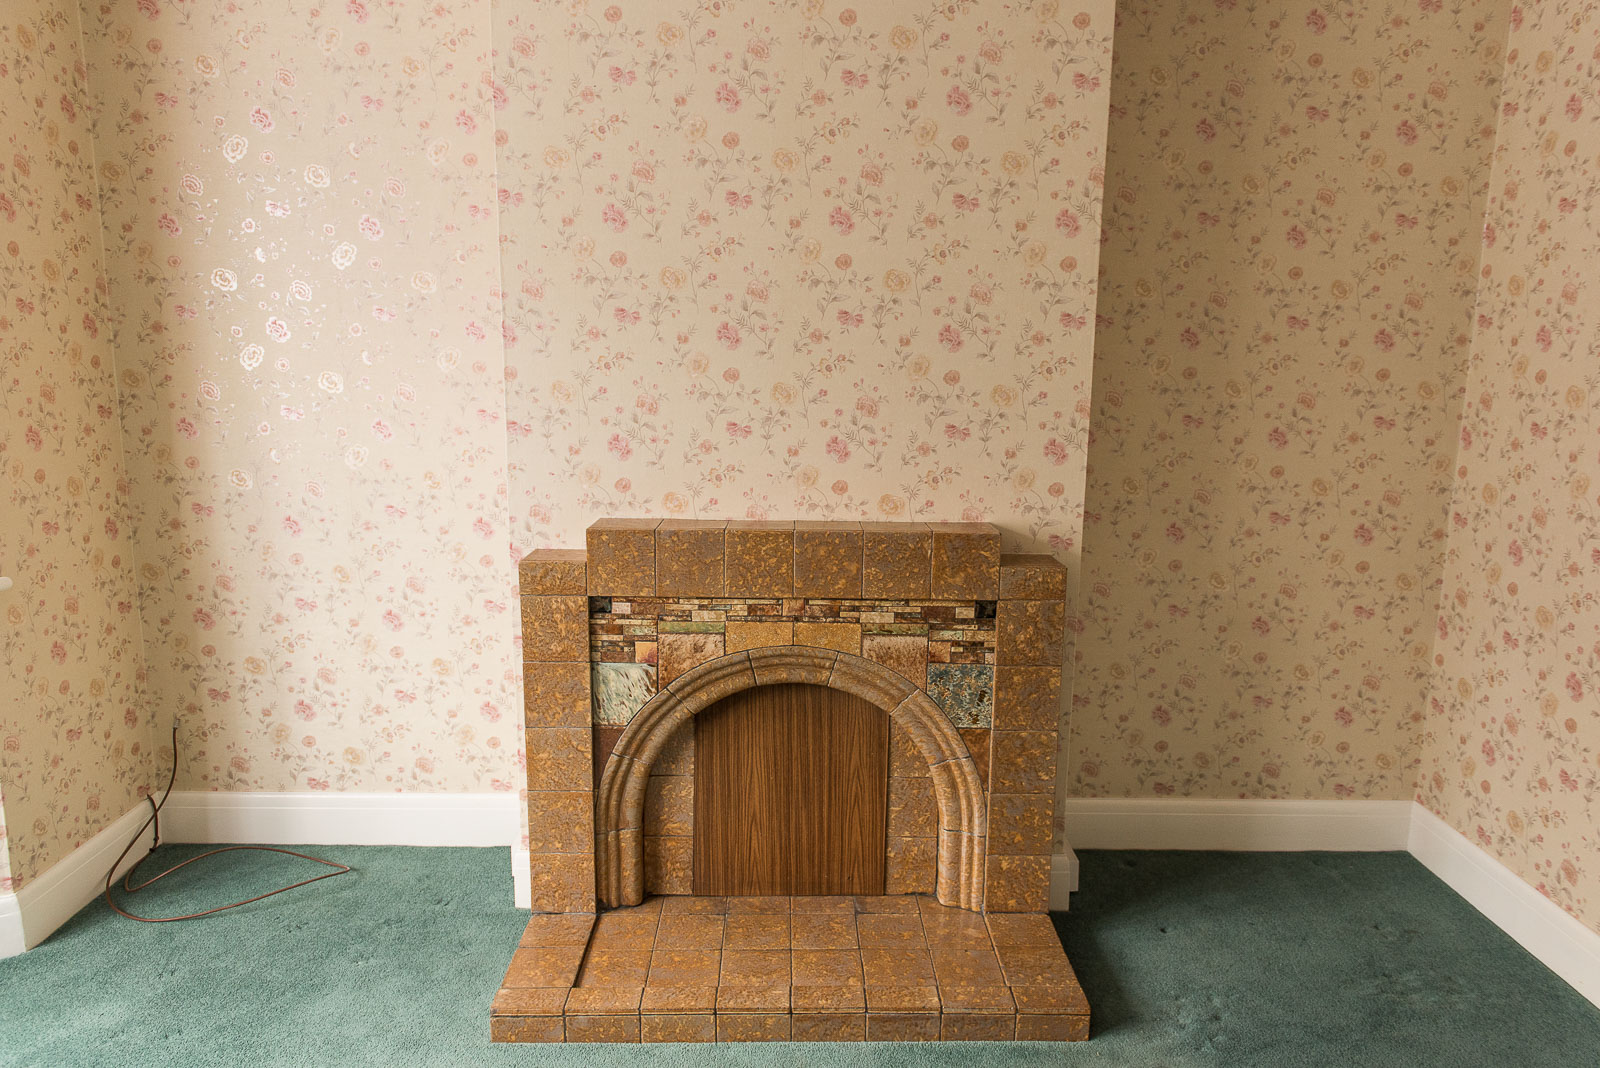 ORIGINAL 1930s FIRE PLACE, ANY TAKERS?